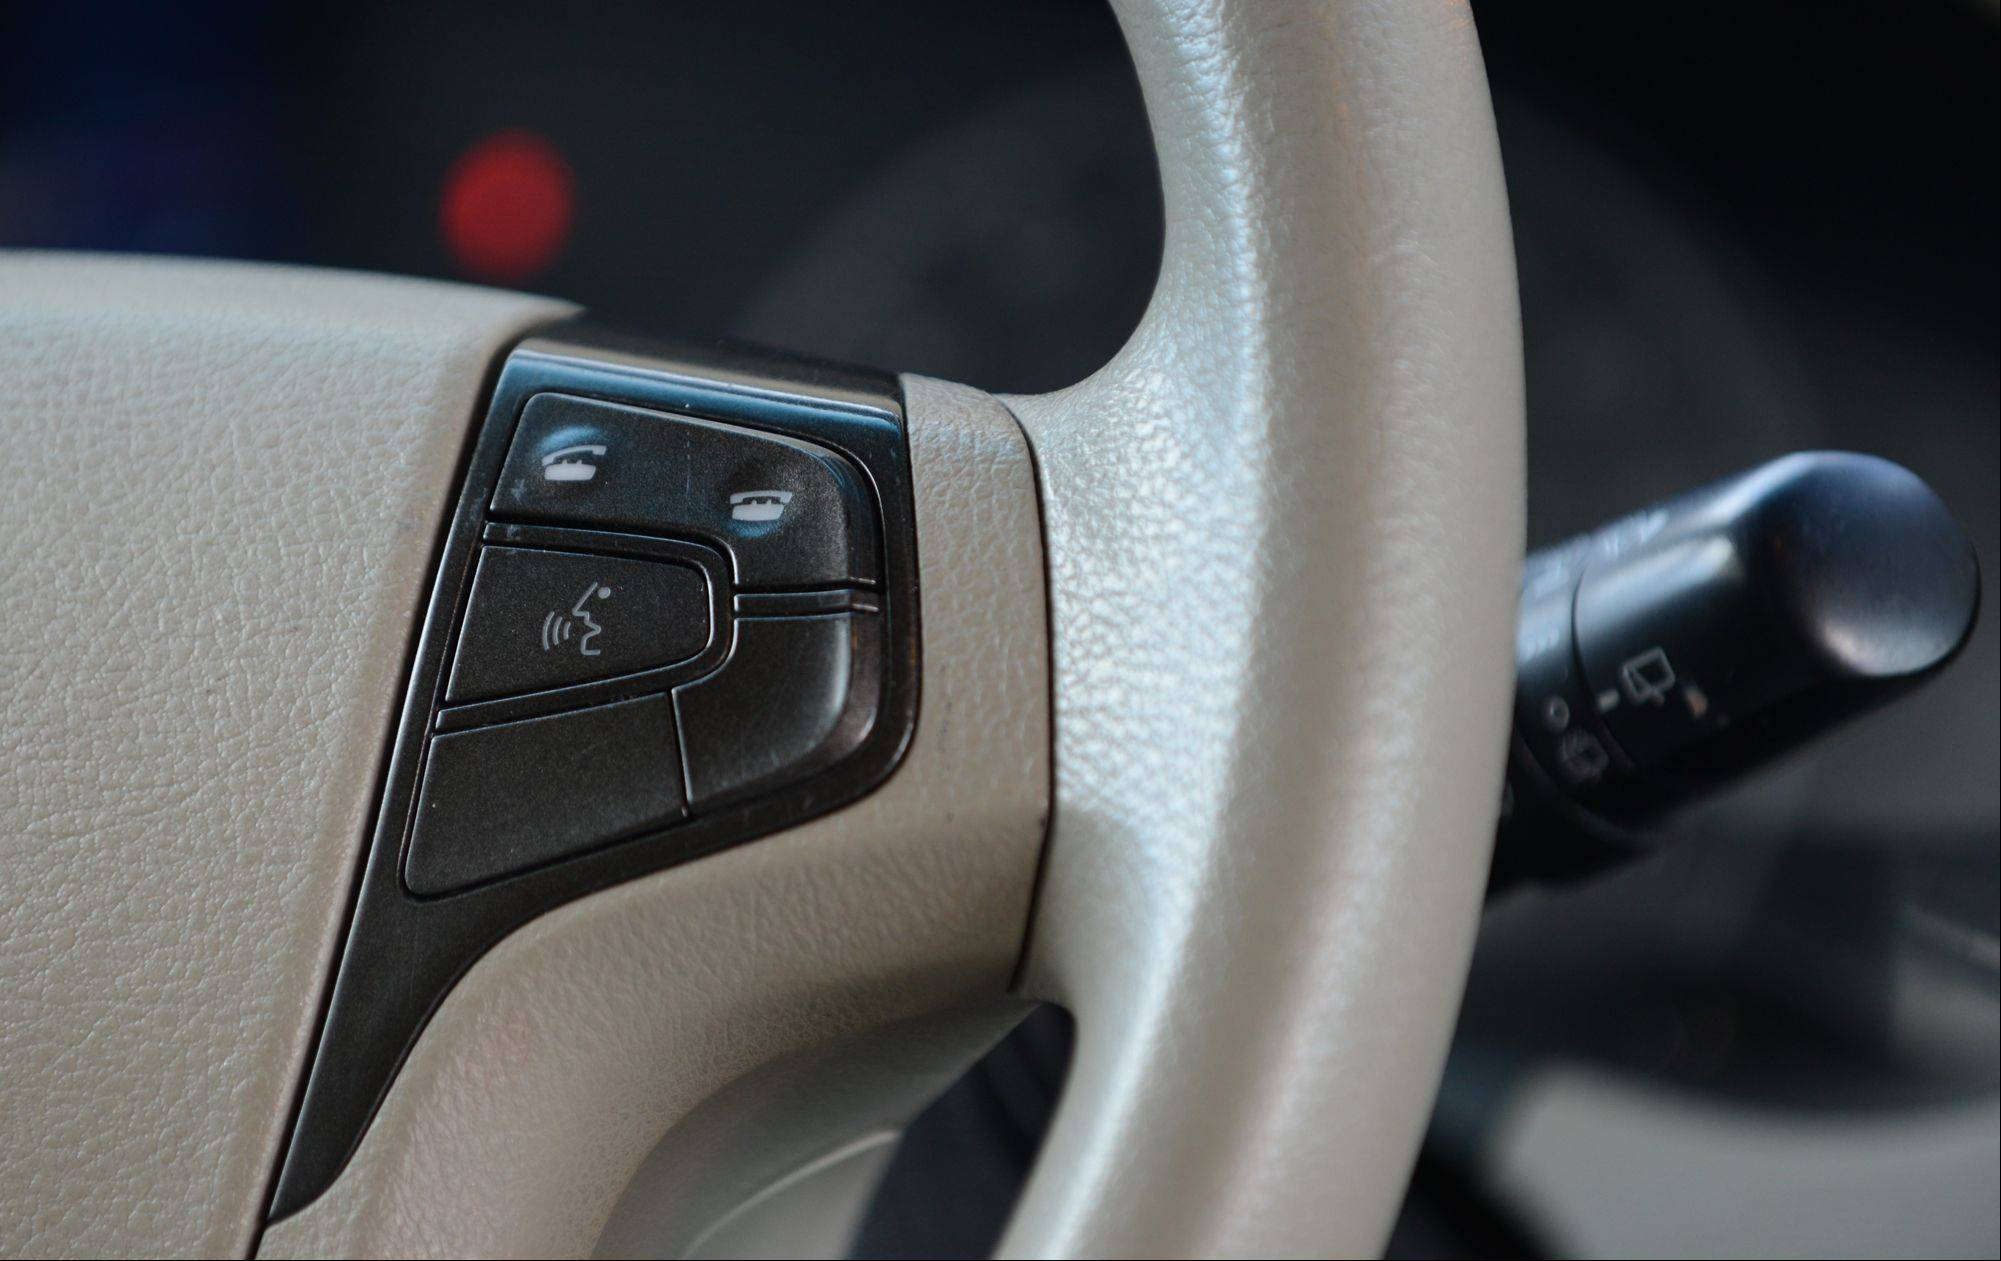 Bluetooth phone connection will be one of the only legal ways to use a cellphone in a car starting Jan. 1.